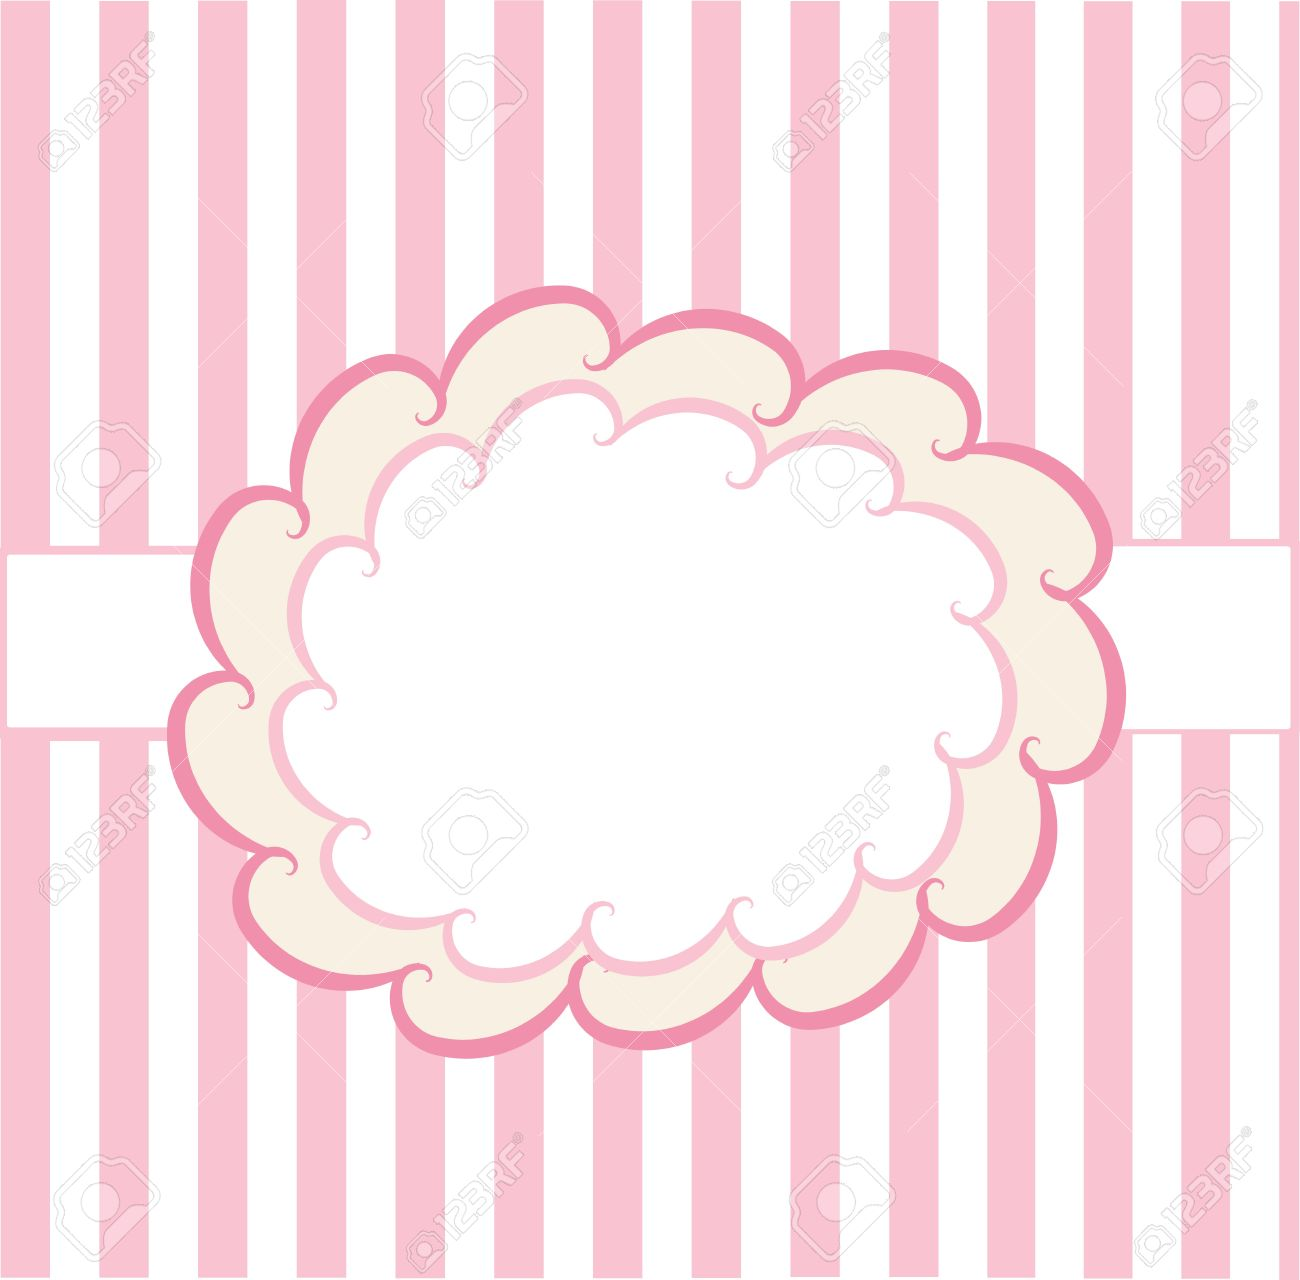 design template on pink and white background royalty free cliparts